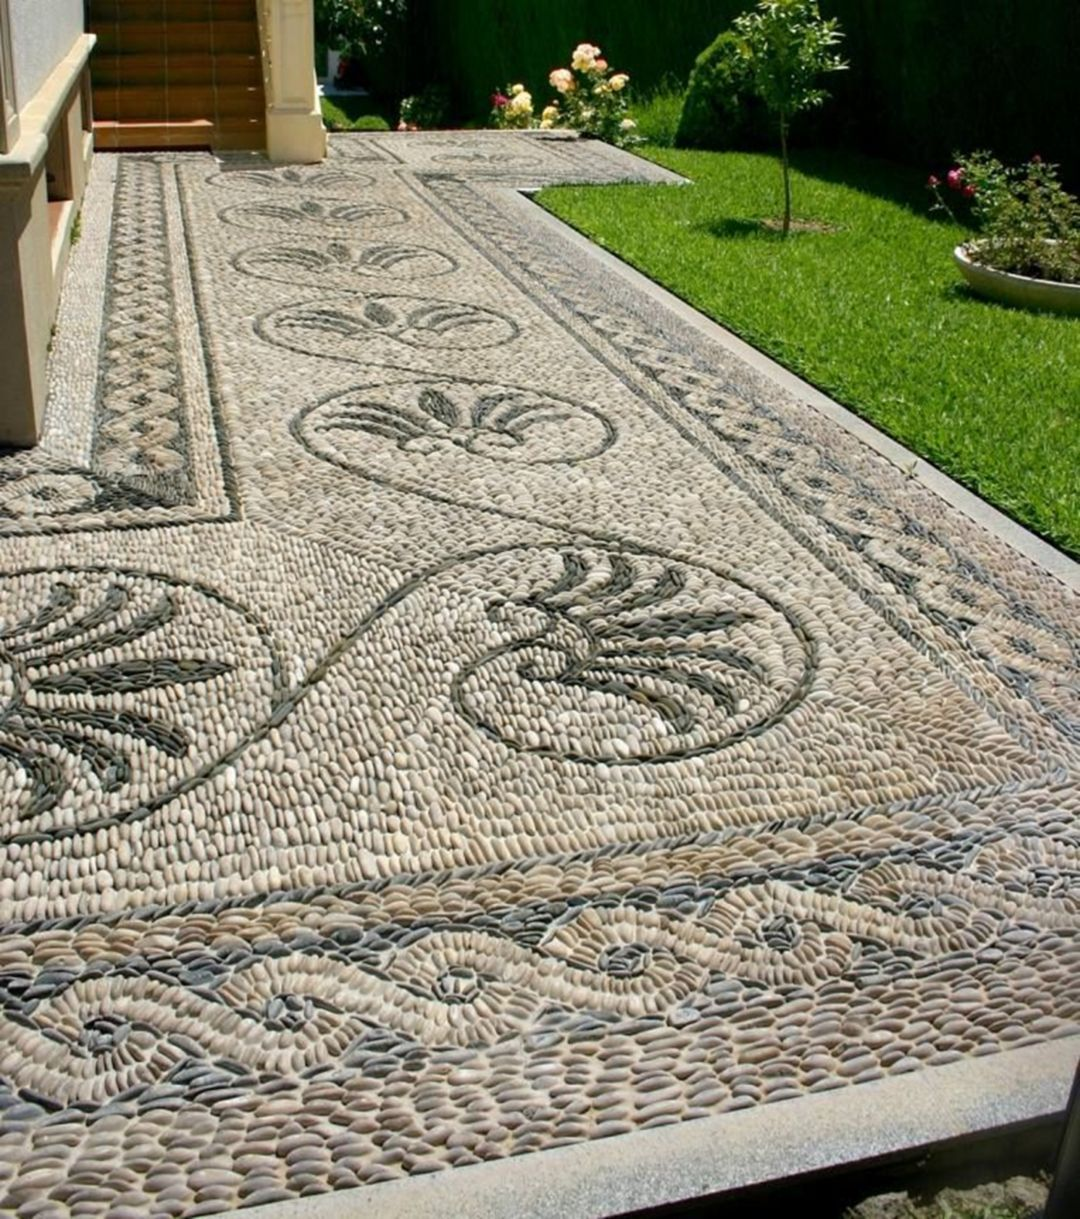 How To Make Beautiful Garden With Pebble Design Ideas (25 Best Pictures)